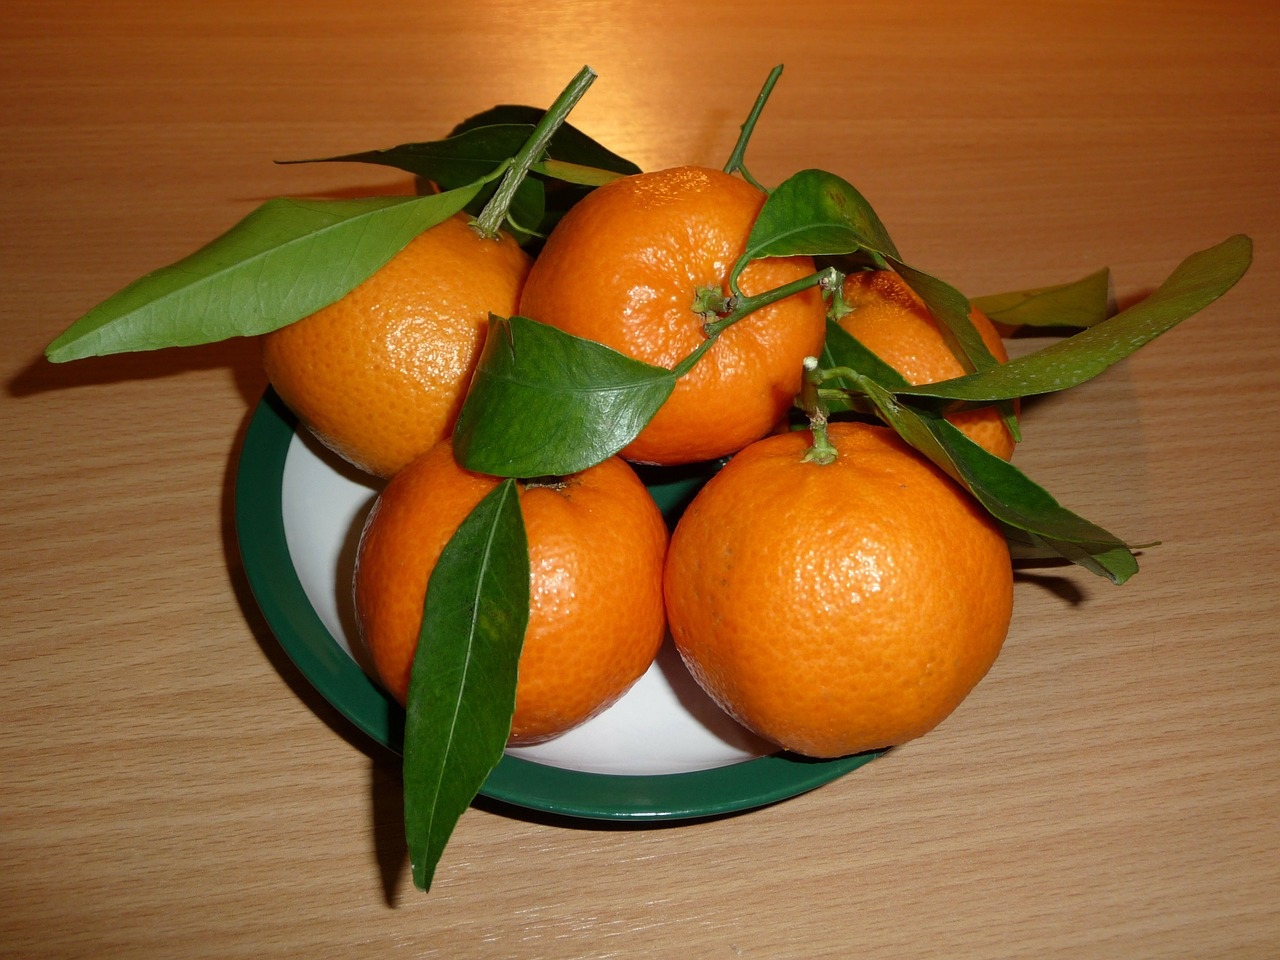 mandarin oranges fruits free photo